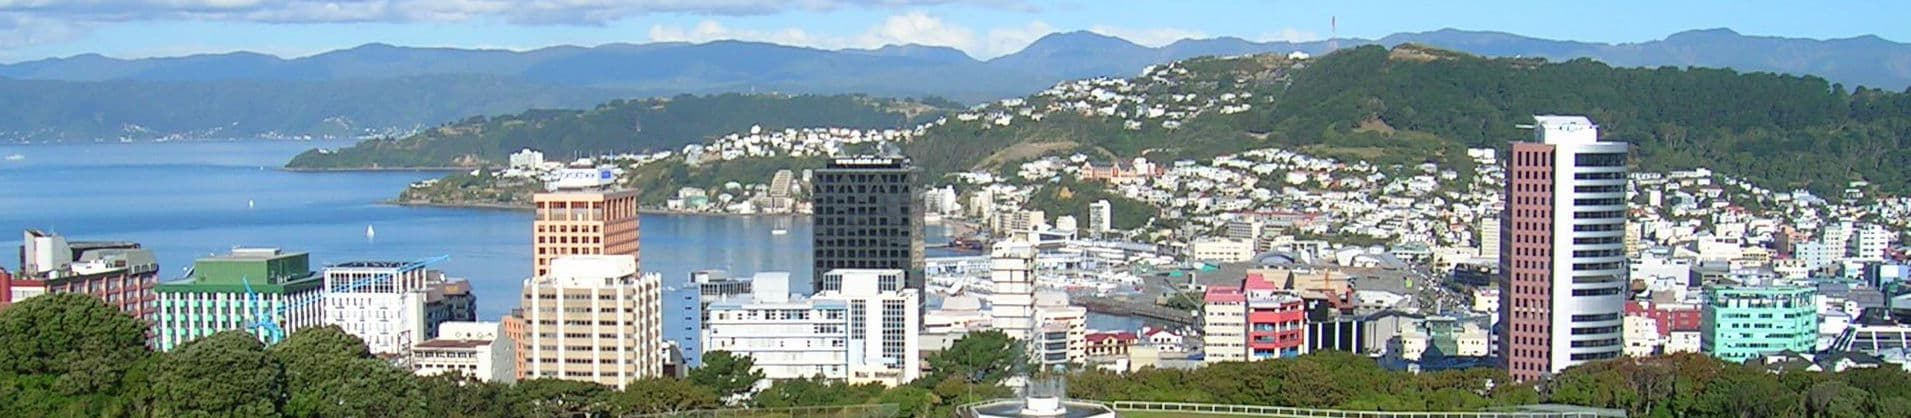 Skyline of Wellington